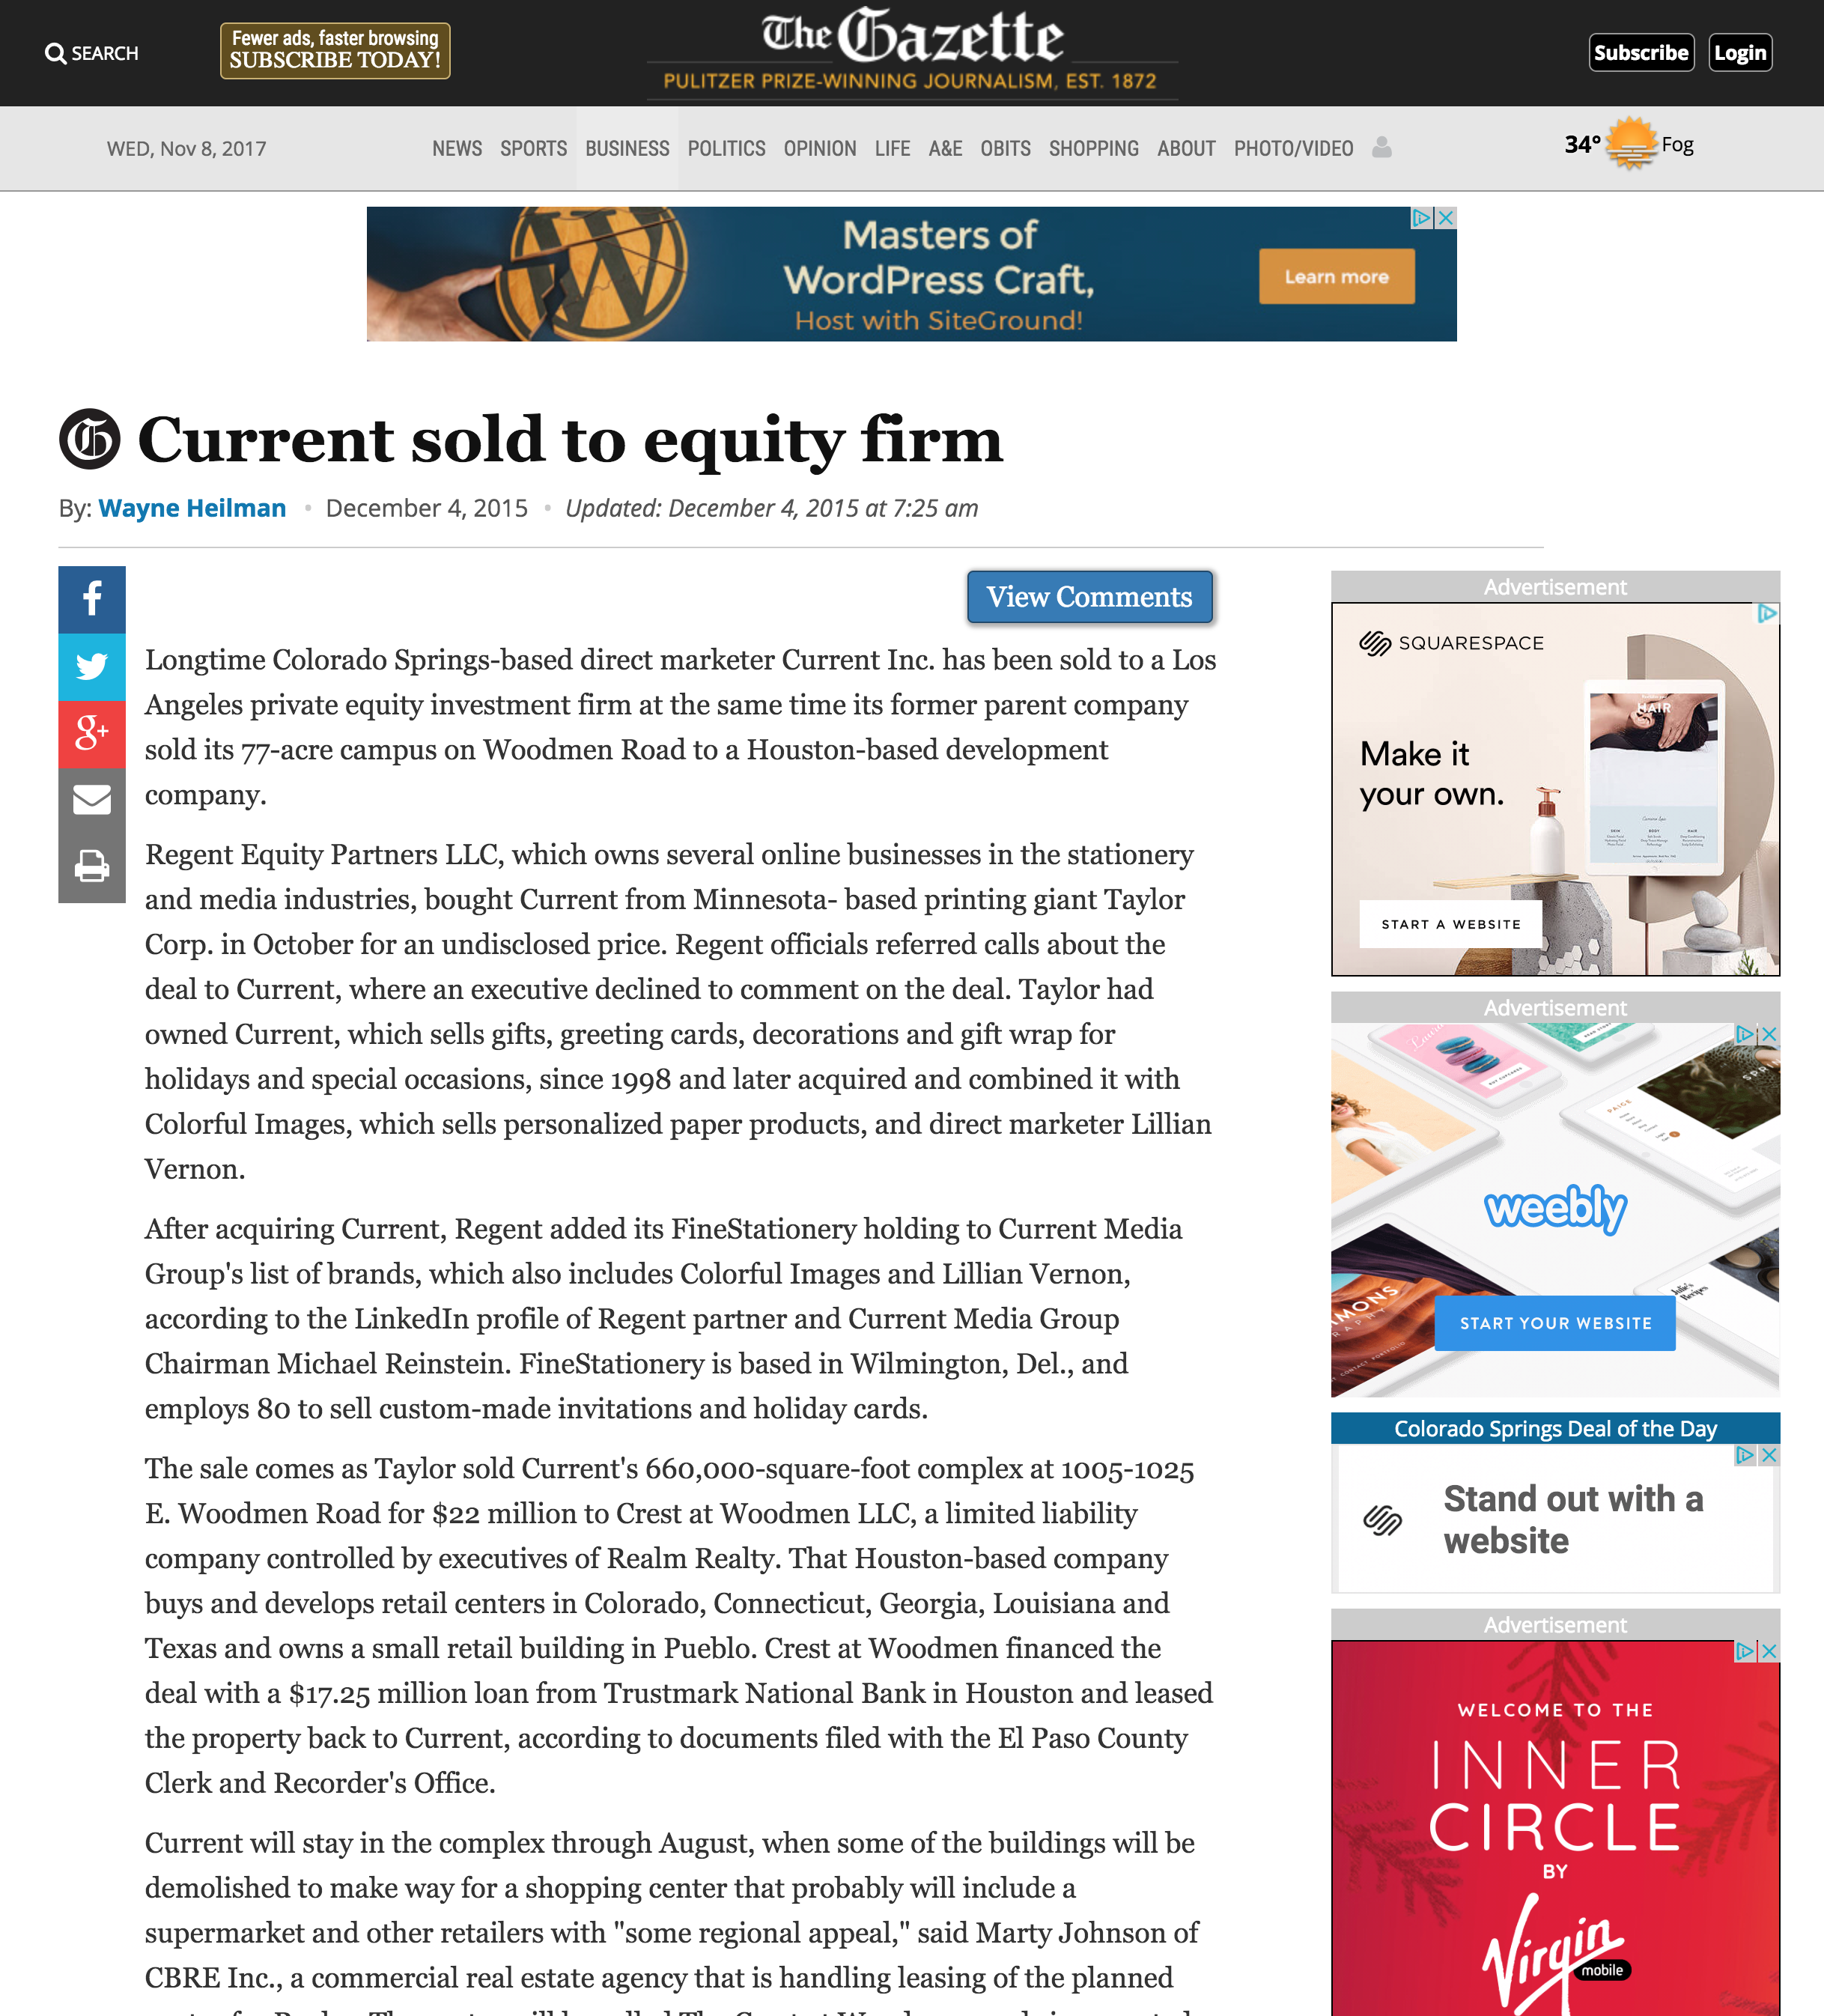 Current Inc. Sold to Equity Firm - The Gazette, December 4, 2015